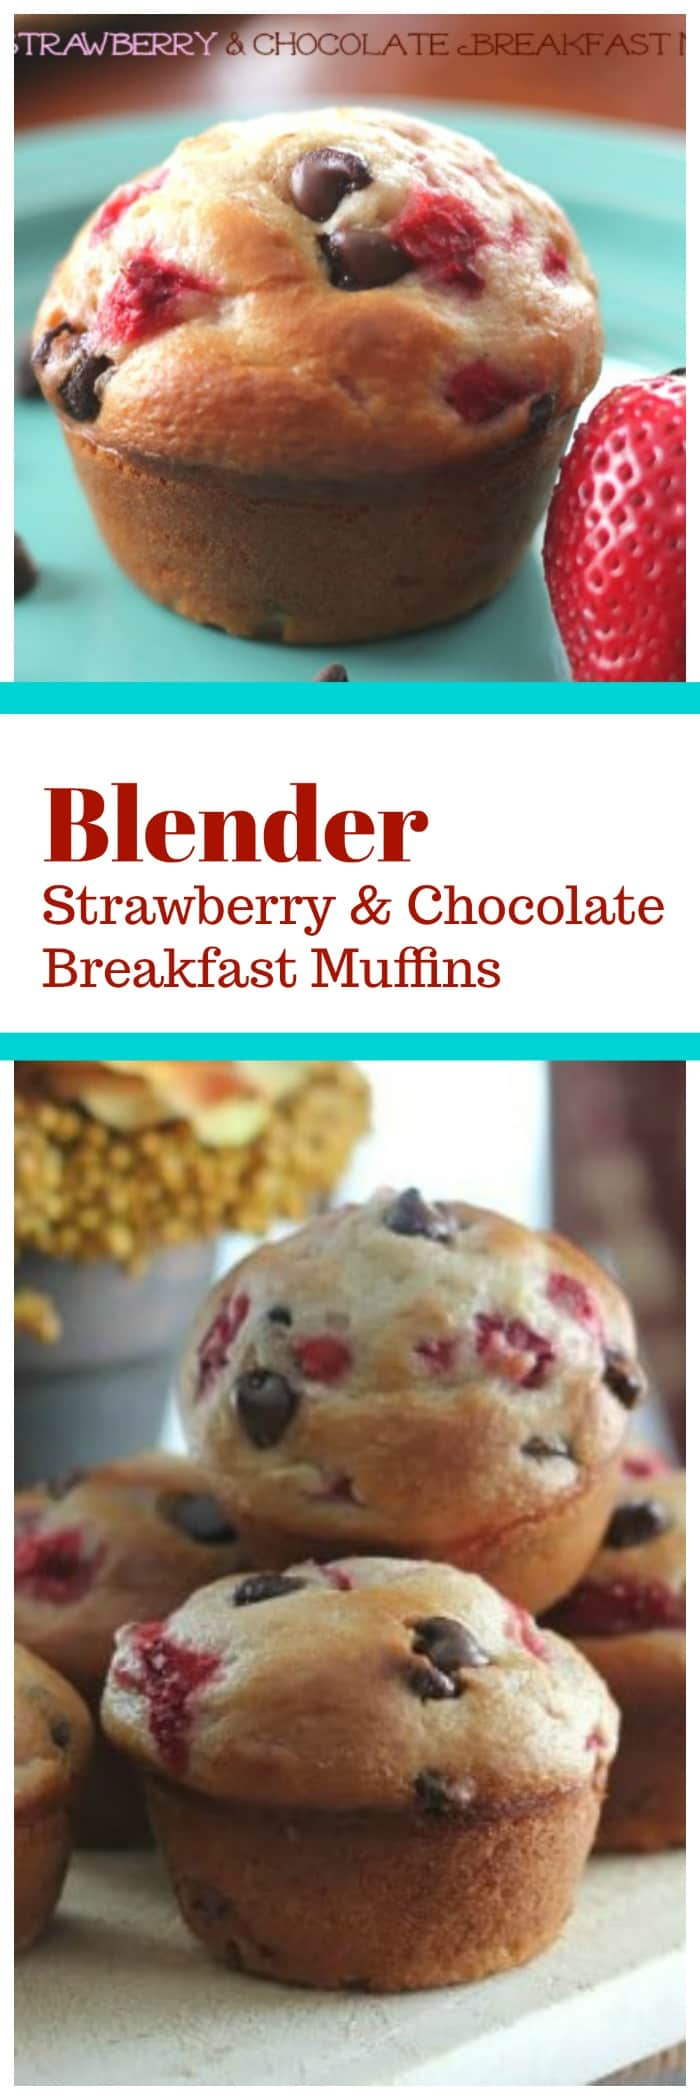 Blender Strawberry & Chocolate Breakfast Muffins {Healthy Too!}